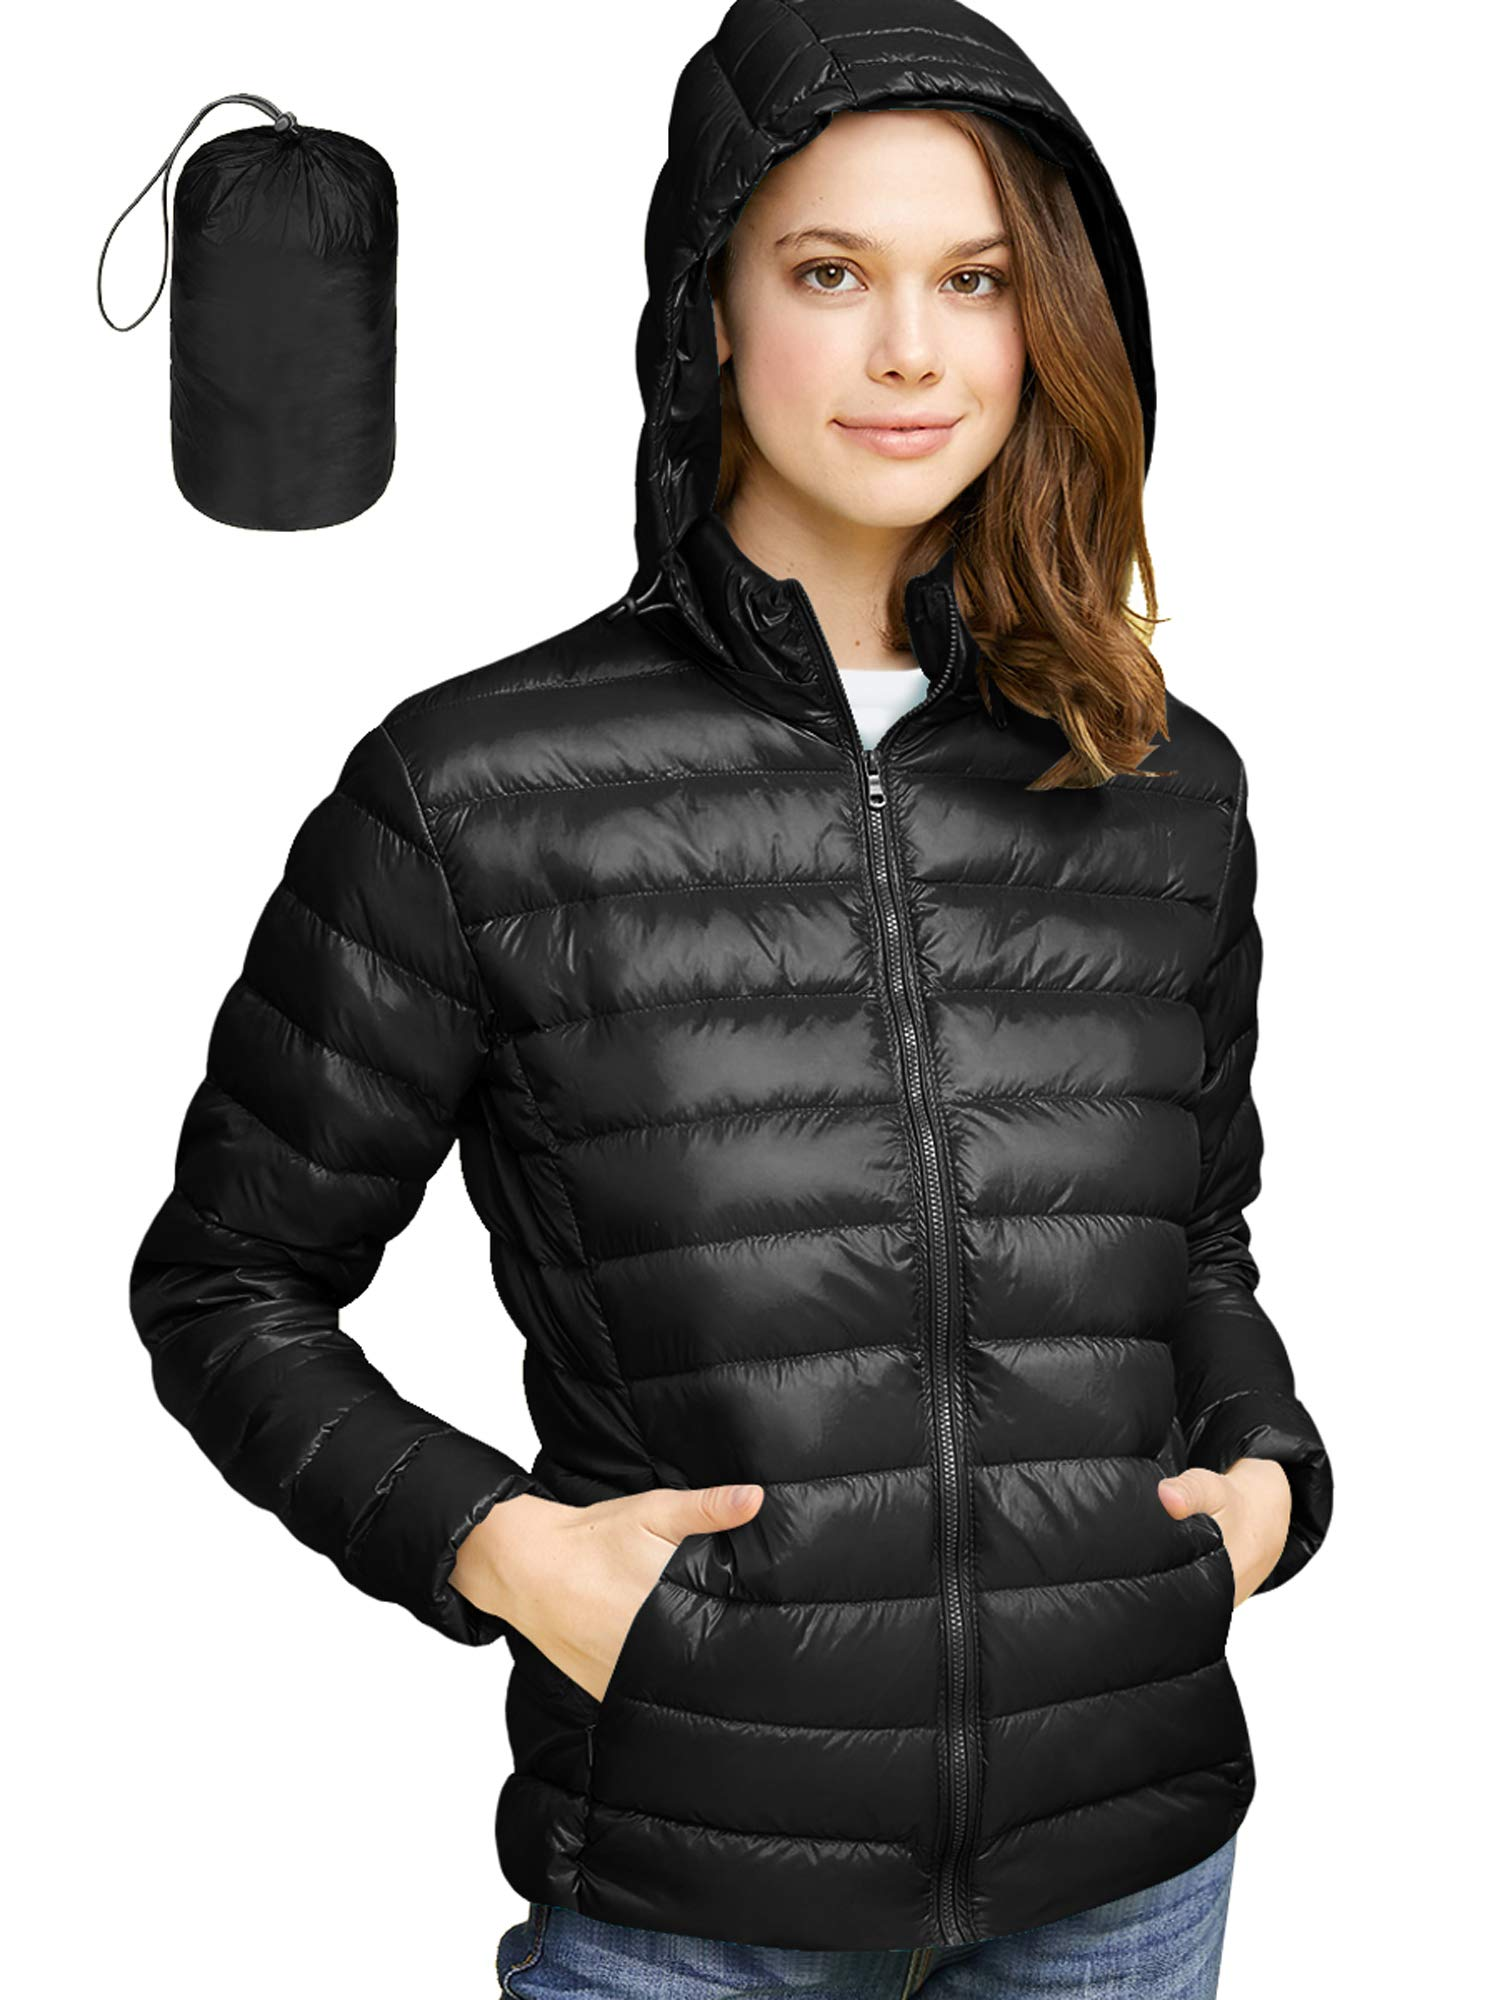 LL WJC2144 Women's Ultra Light Weight Packable Down Jacket with Removable Hoodie S Black by Lock and Love